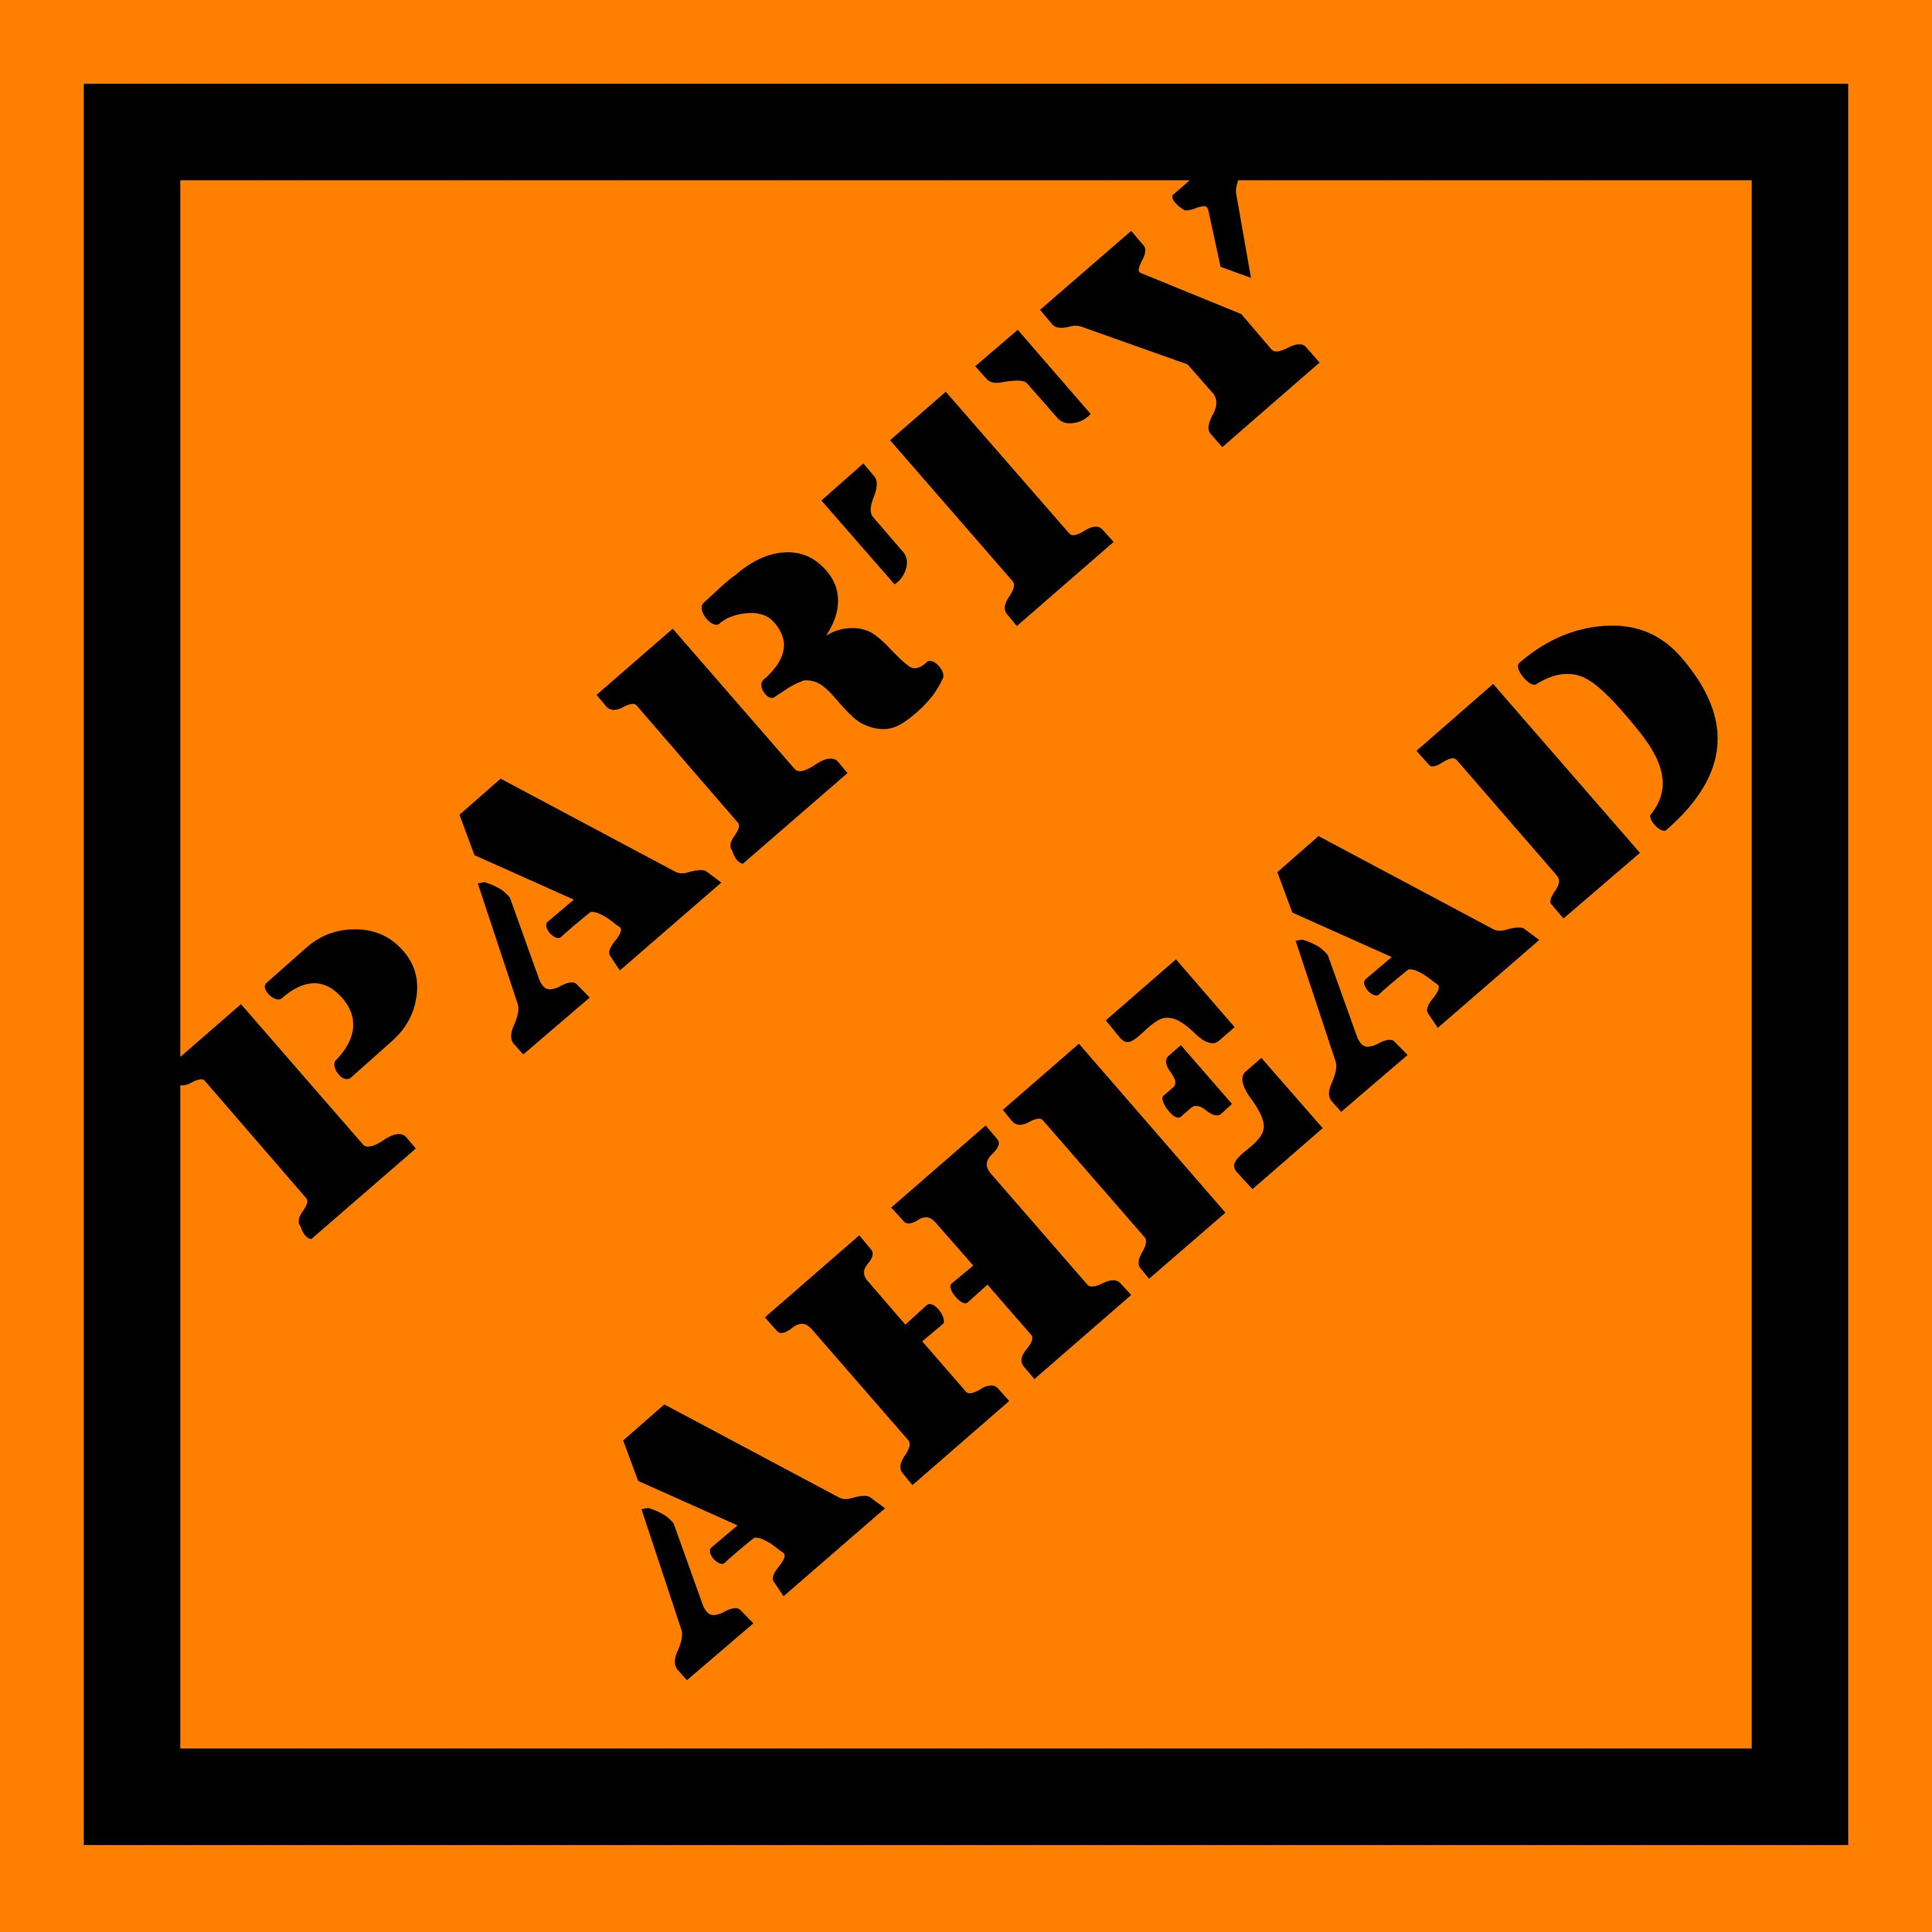 Construction party clipart jpg free stock 219 views | Zayn #2 in 2019 | Construction signs ... jpg free stock